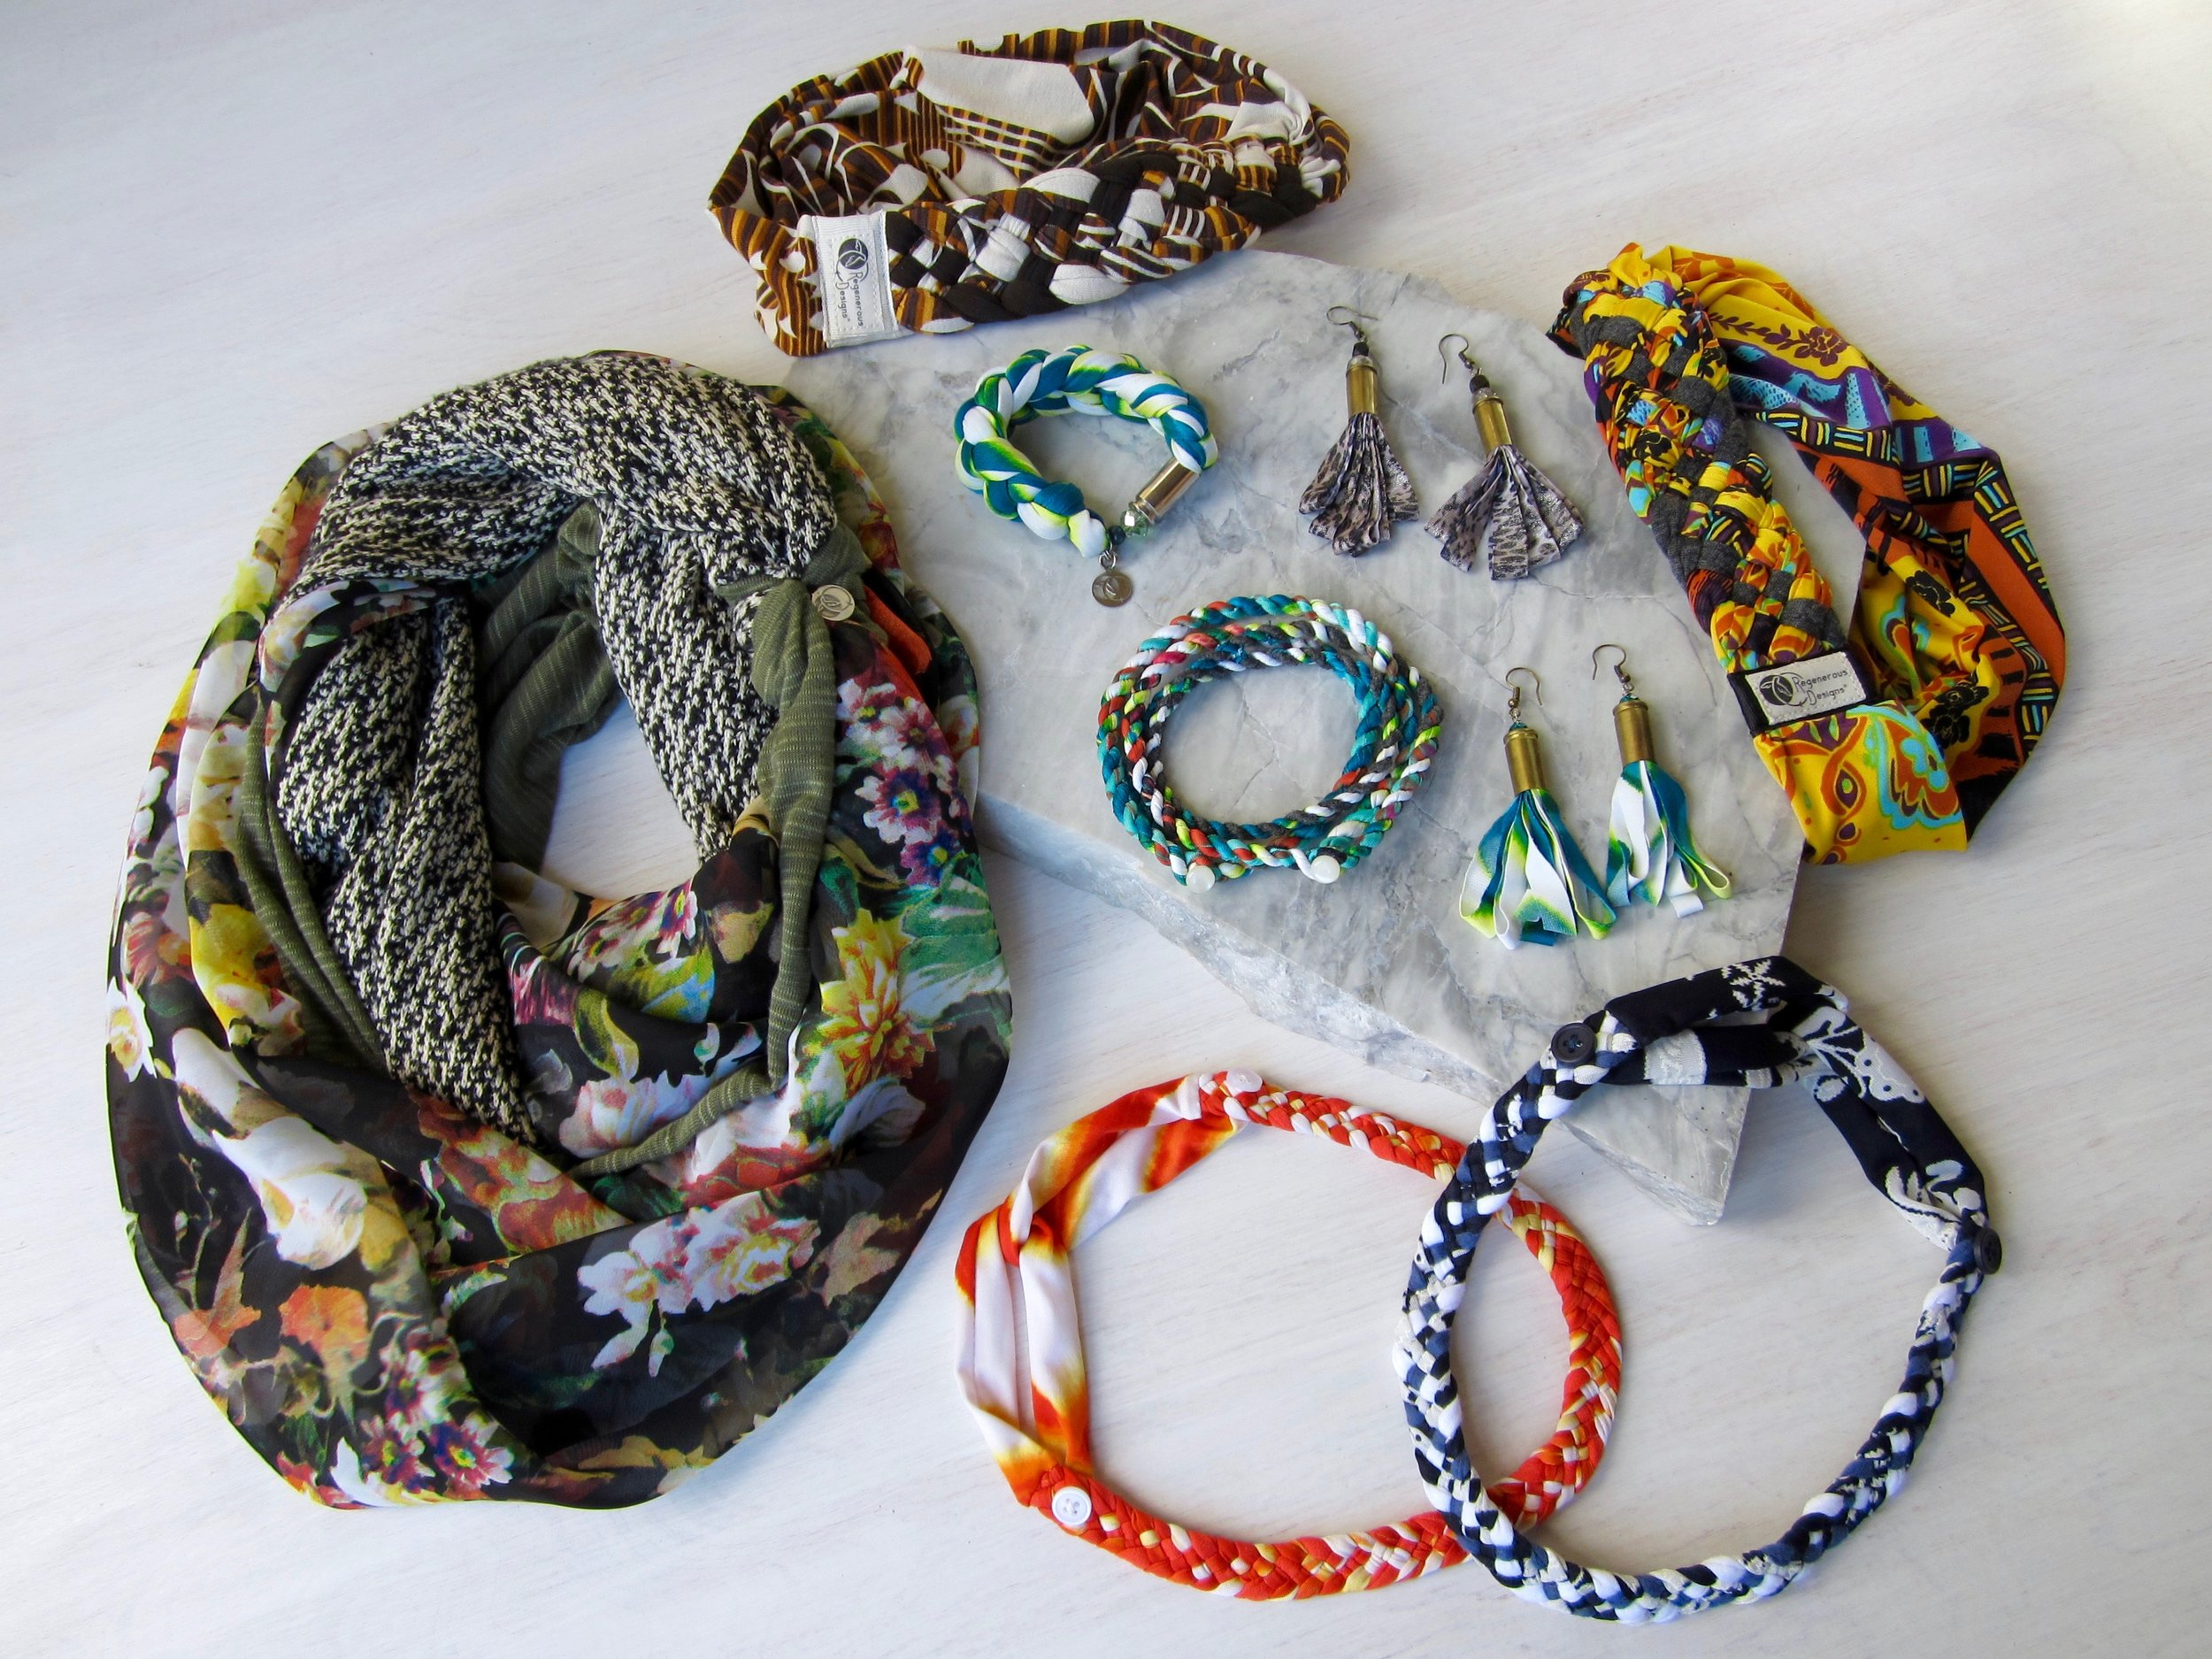 Stylish and versatile accessories made by Alyssa.